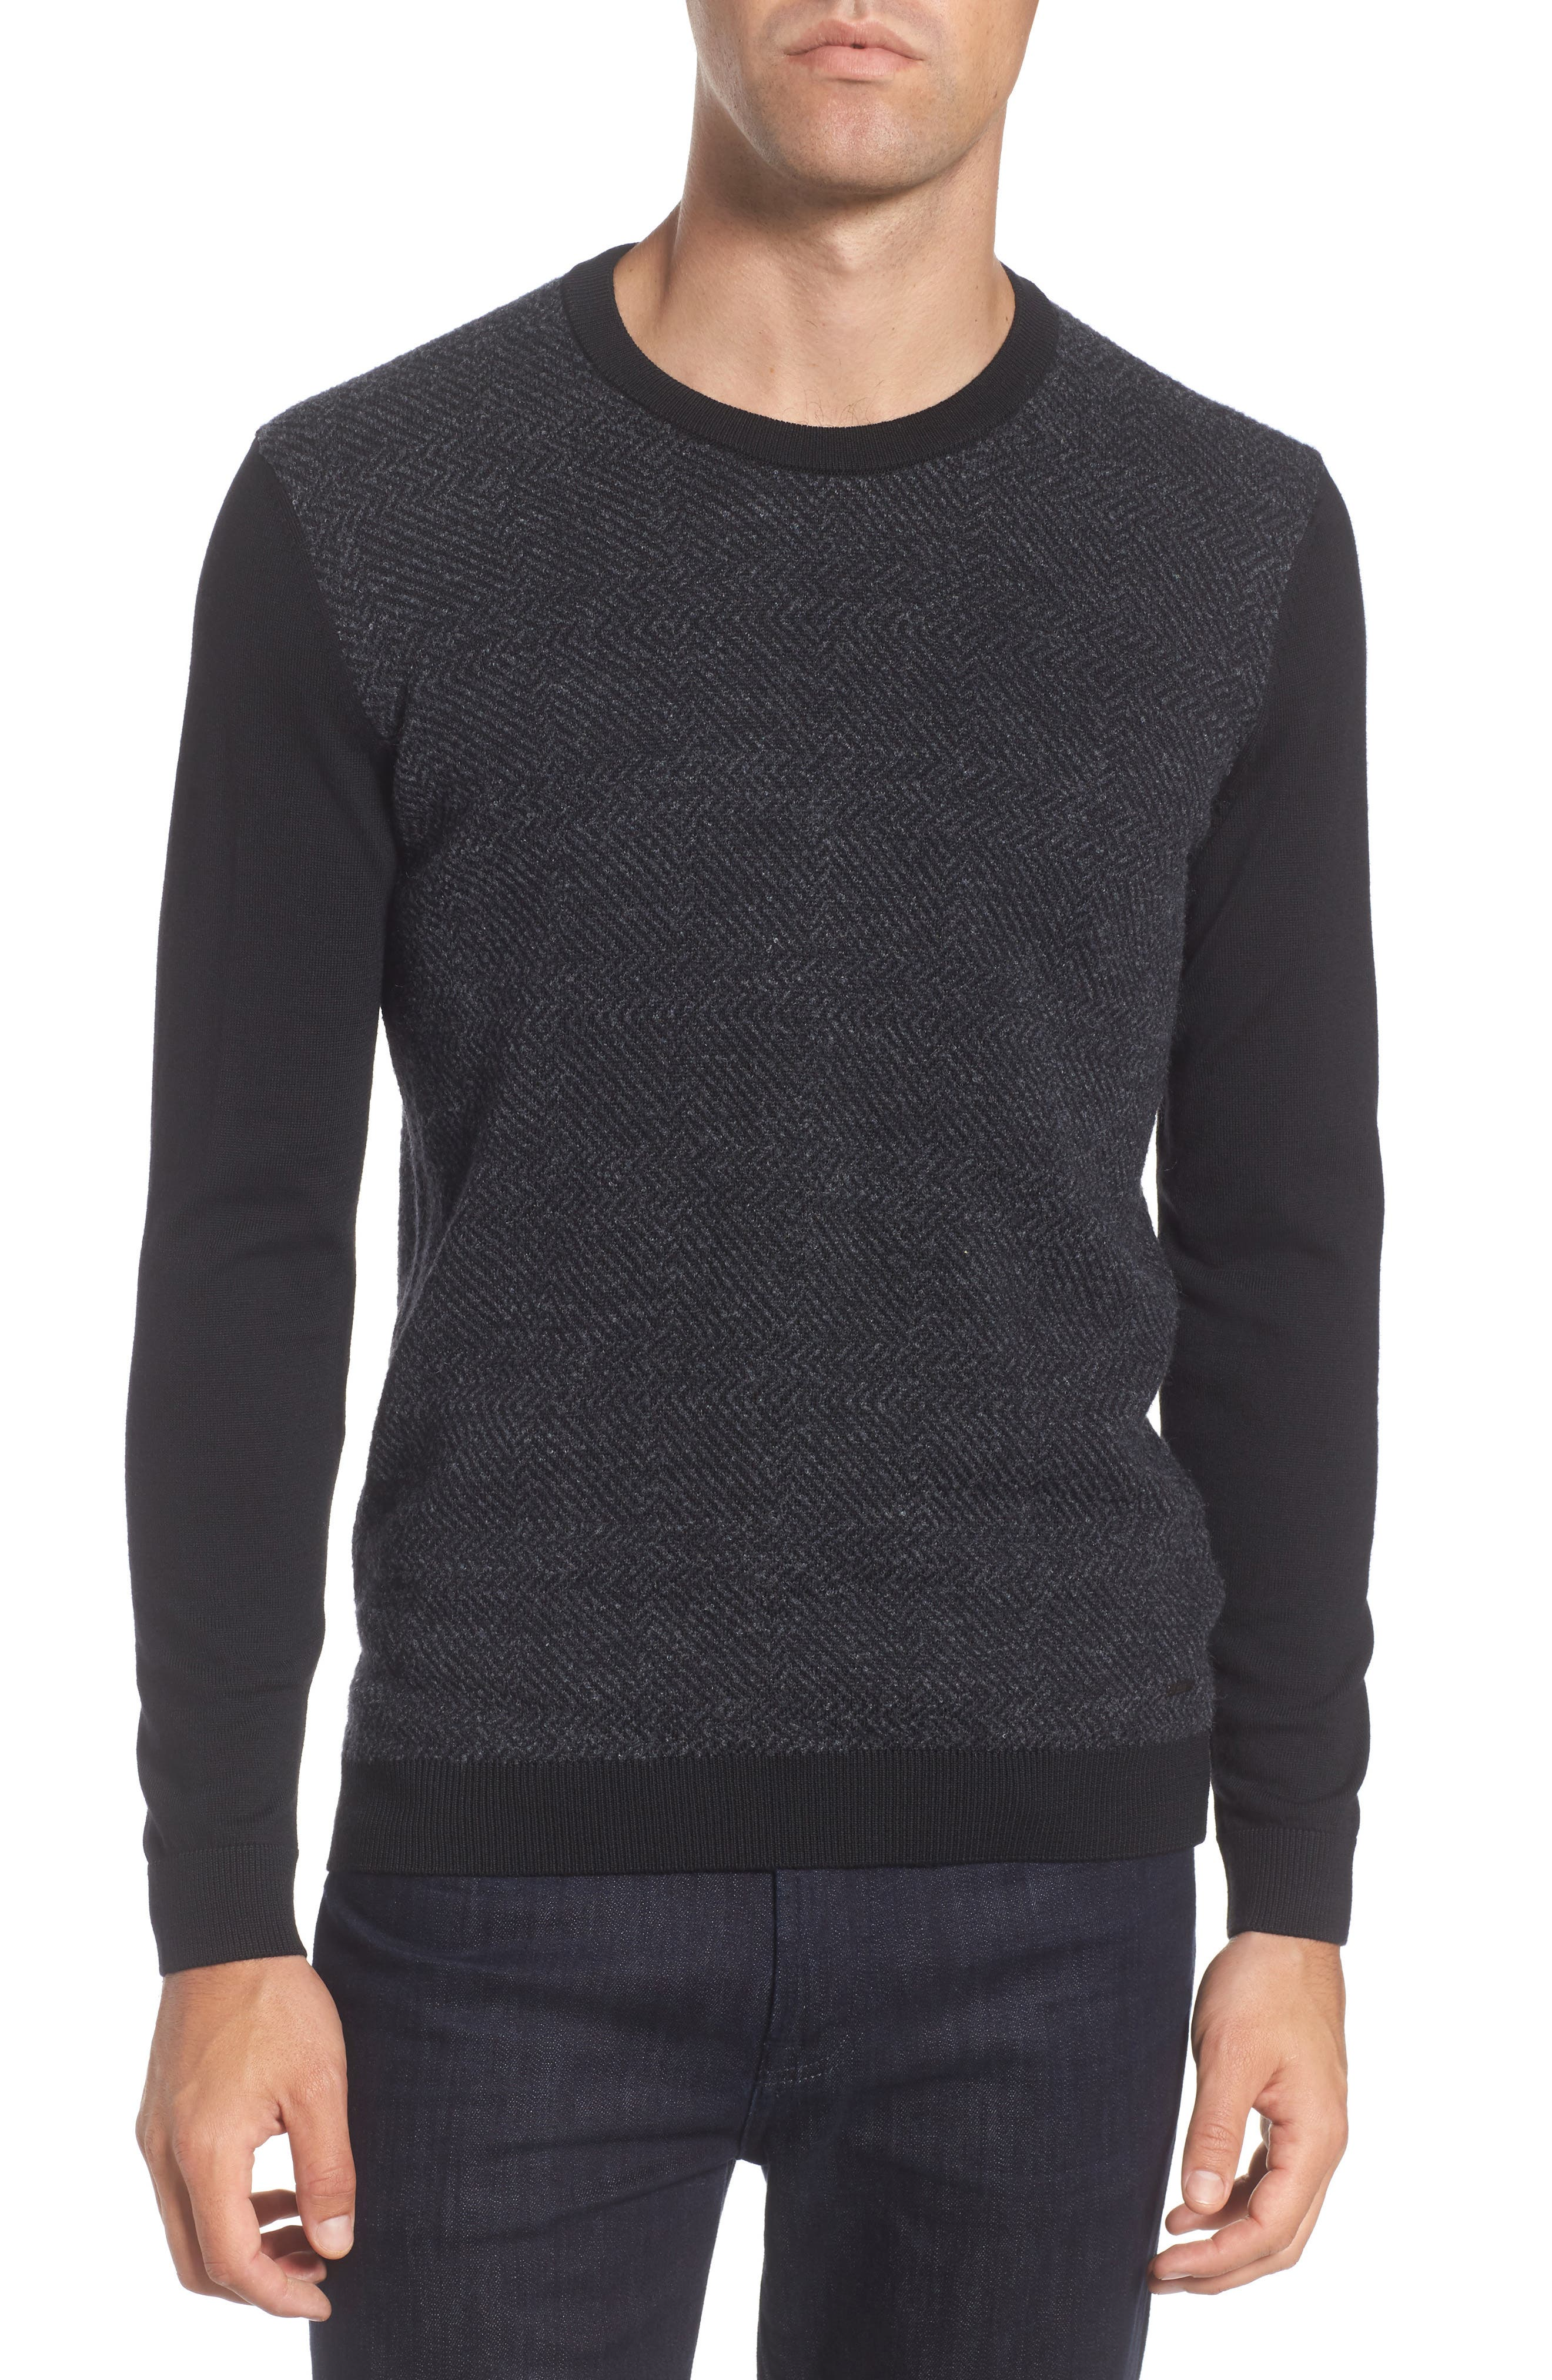 Notto Wool Blend Sweater,                             Main thumbnail 1, color,                             Black